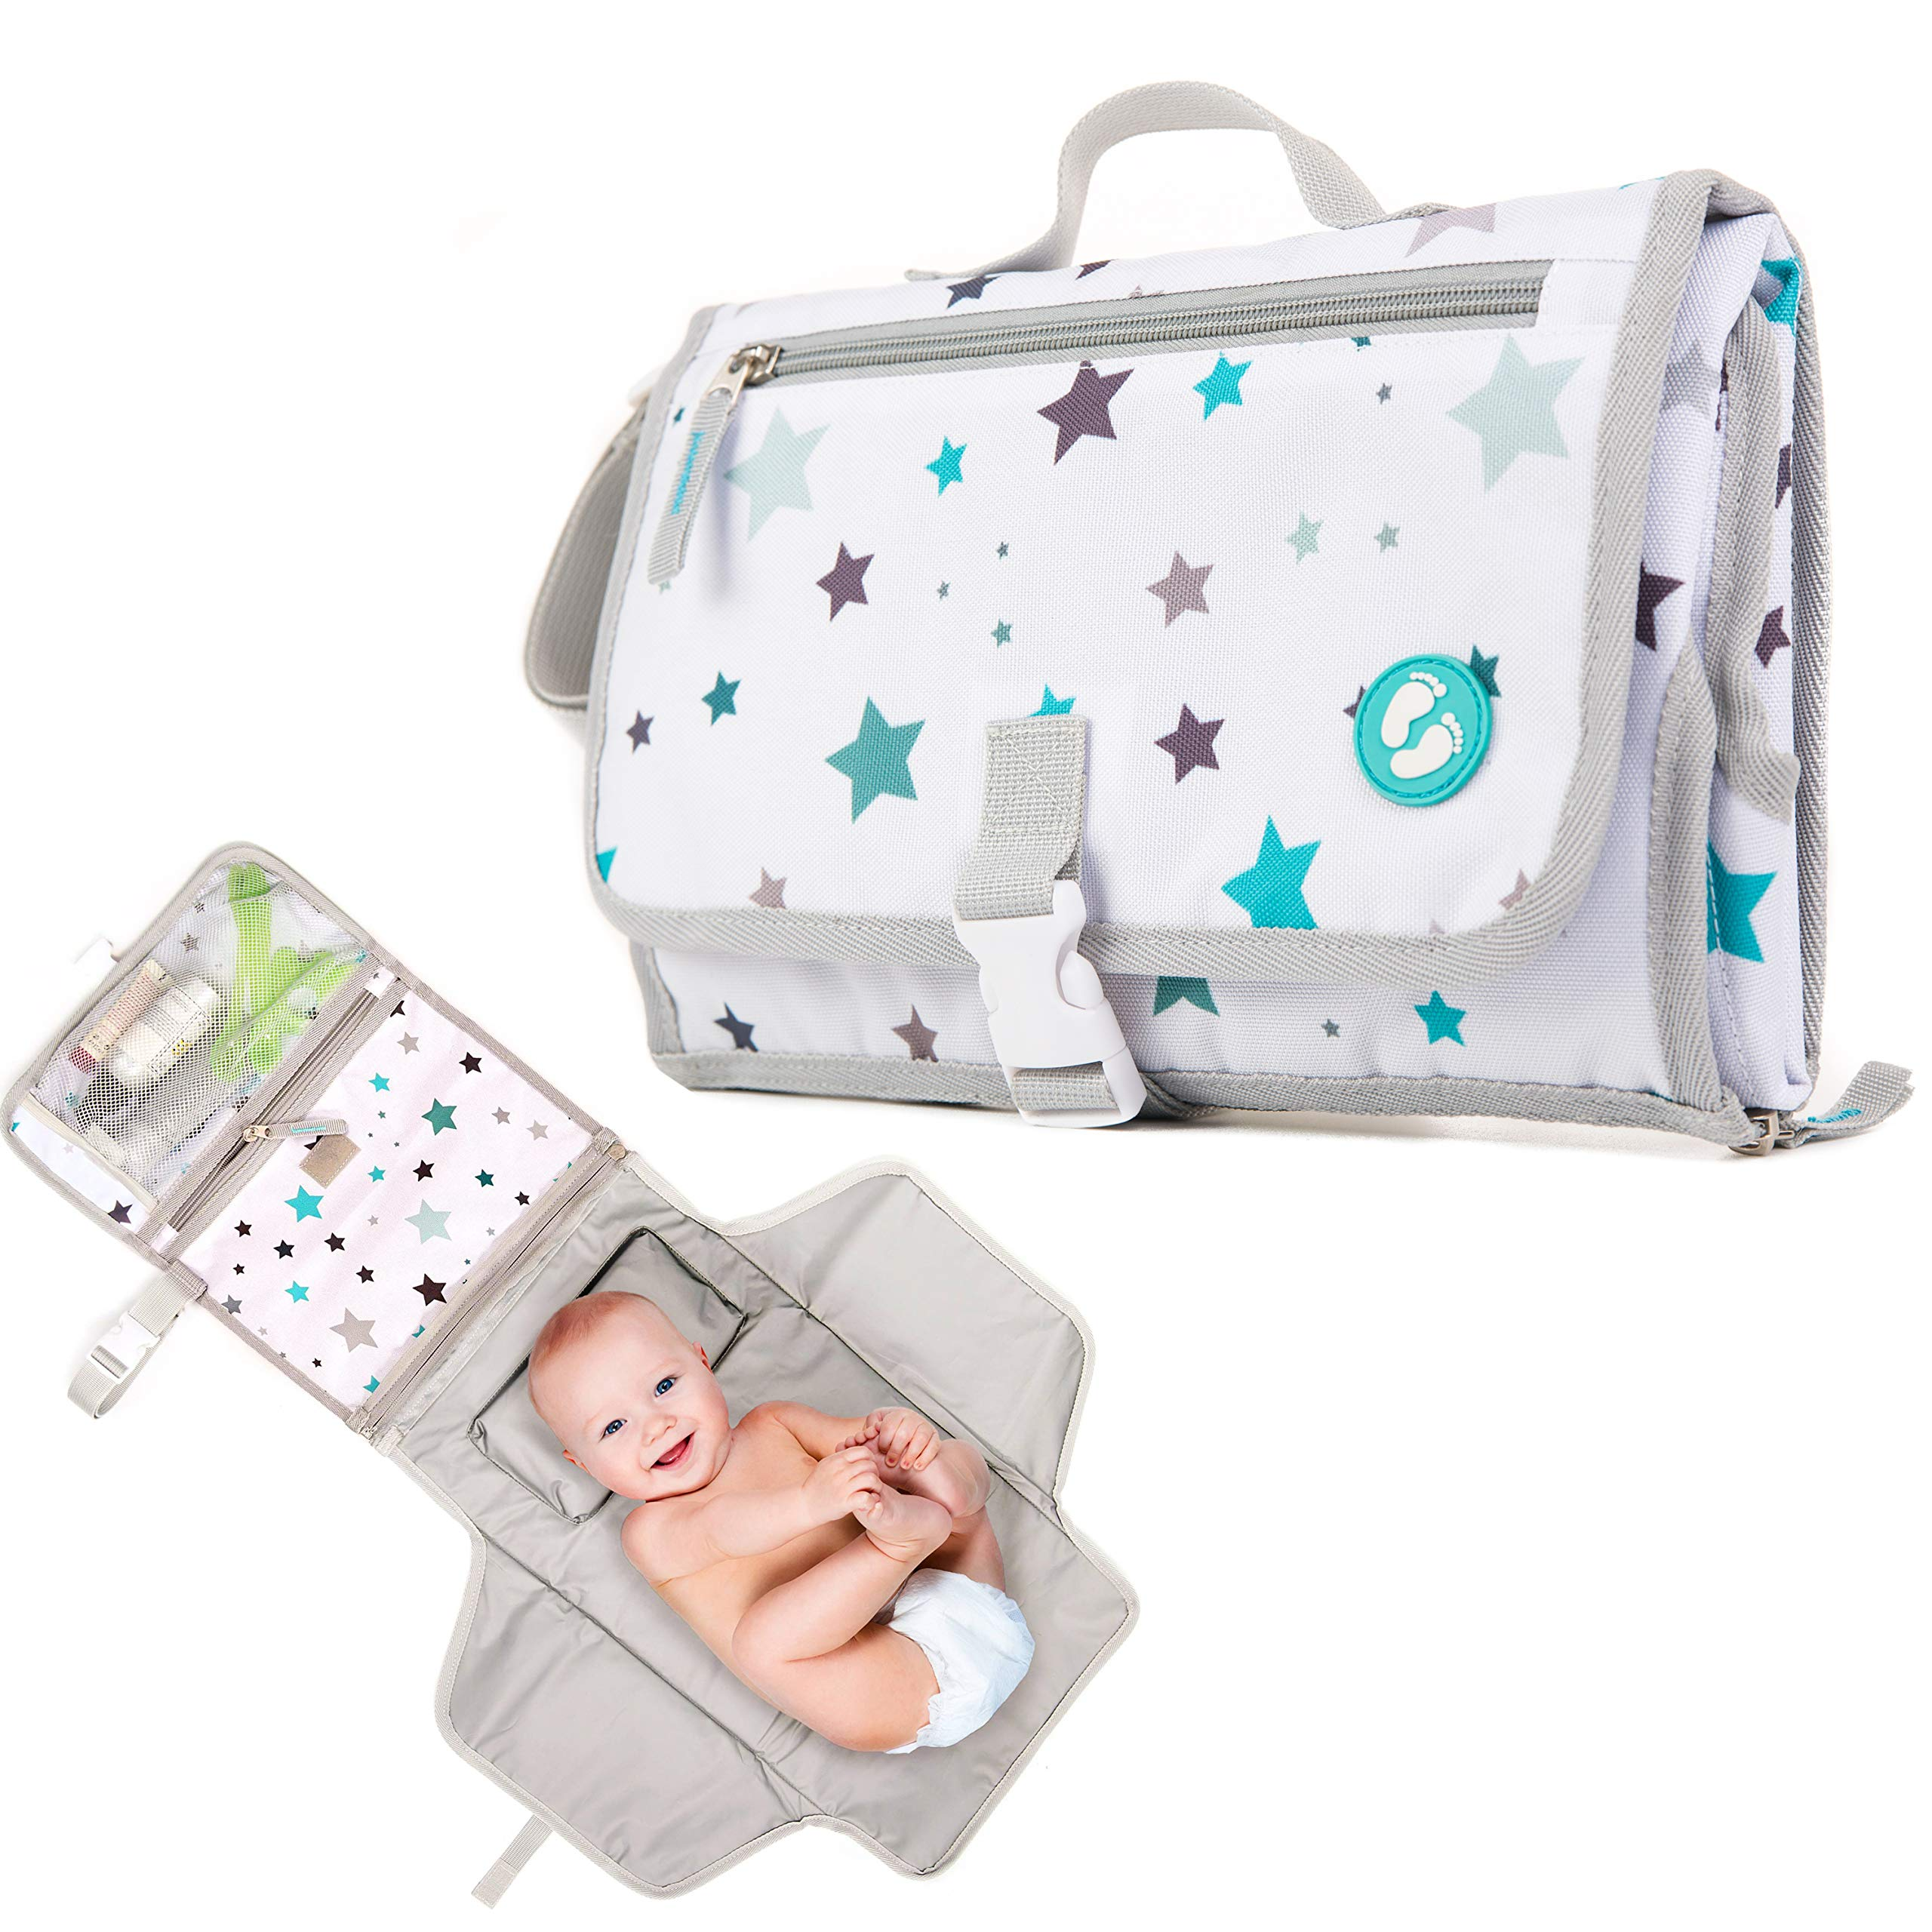 Portable Diaper Changing Pad with Pockets   Baby Changing Mat Station for Girls and Boys   On The Go Waterproof Baby Changing Pad by Ludivy by Ludivy